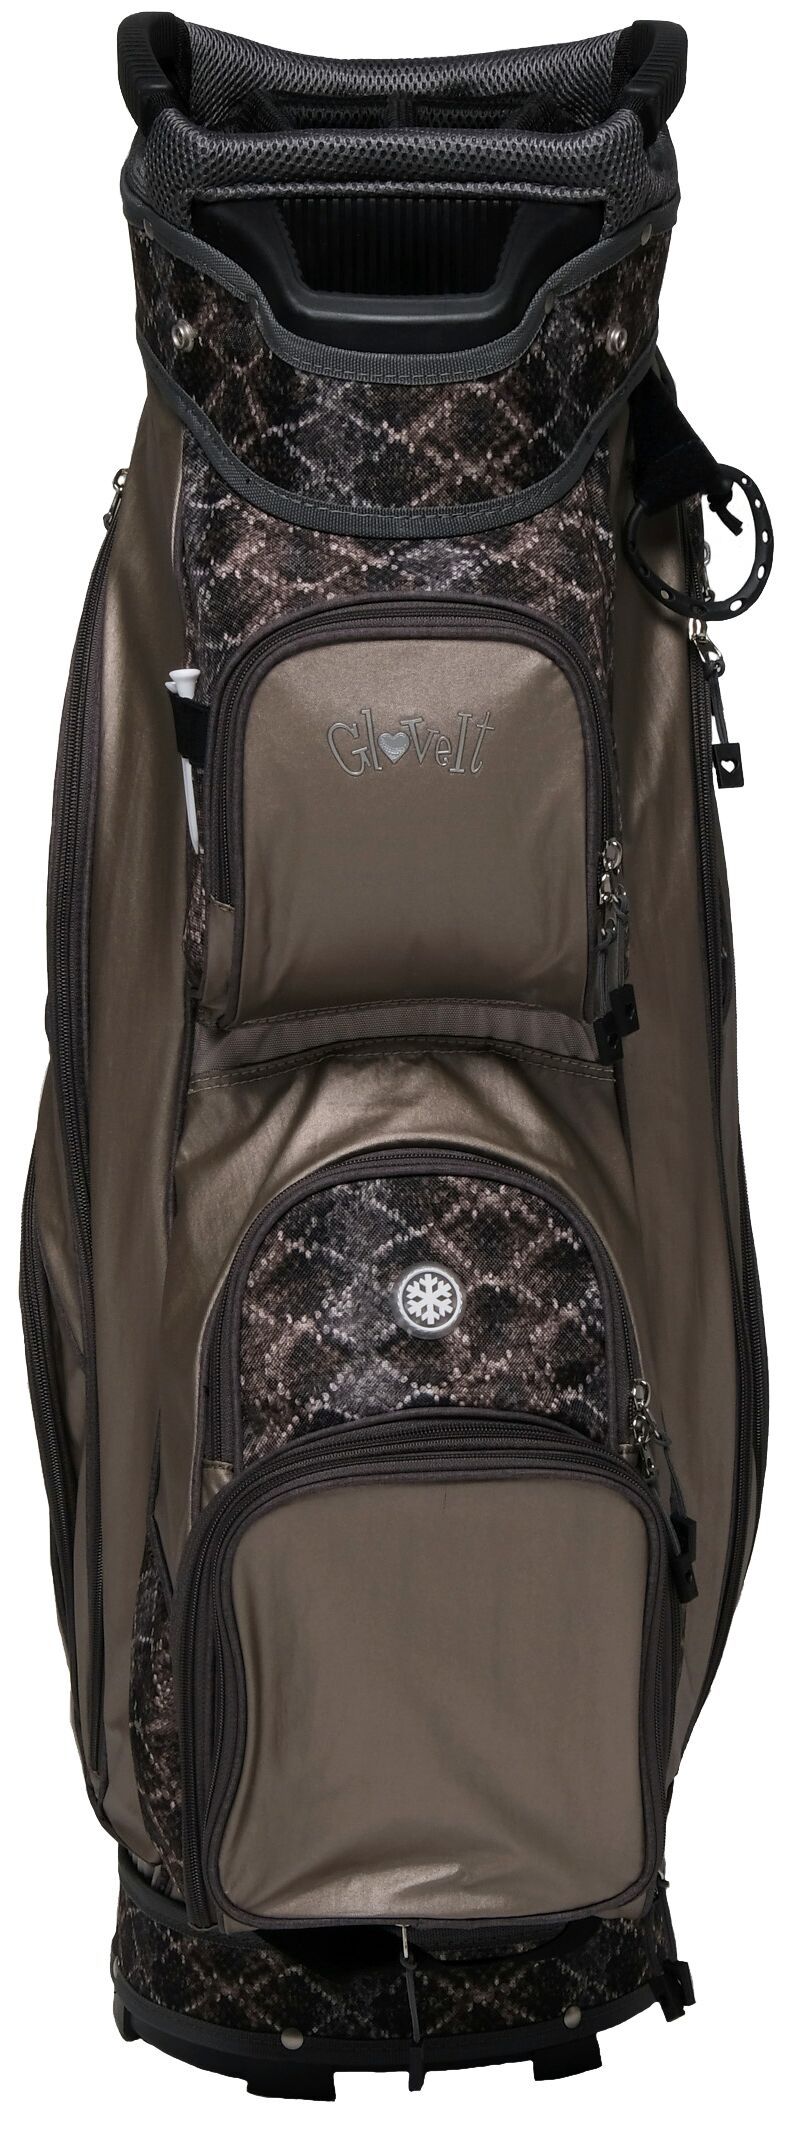 DIAMONDBACK Women's Golf Bag